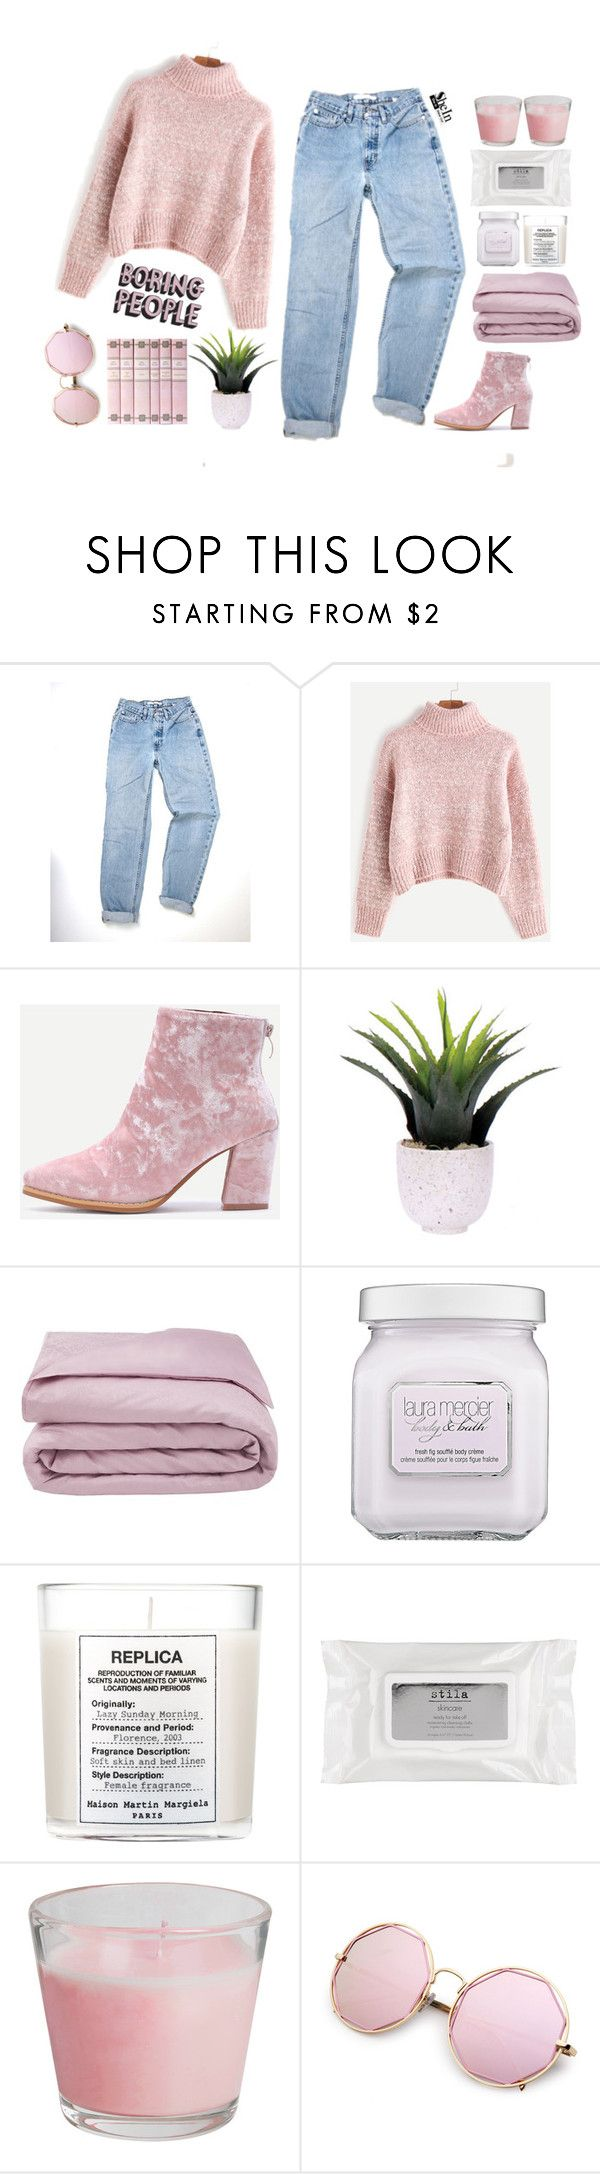 """#SHEIN"" by credentovideos ❤ liked on Polyvore featuring WithChic, Lux-Art Silks, Frette, Laura Mercier, Maison Margiela and Stila"